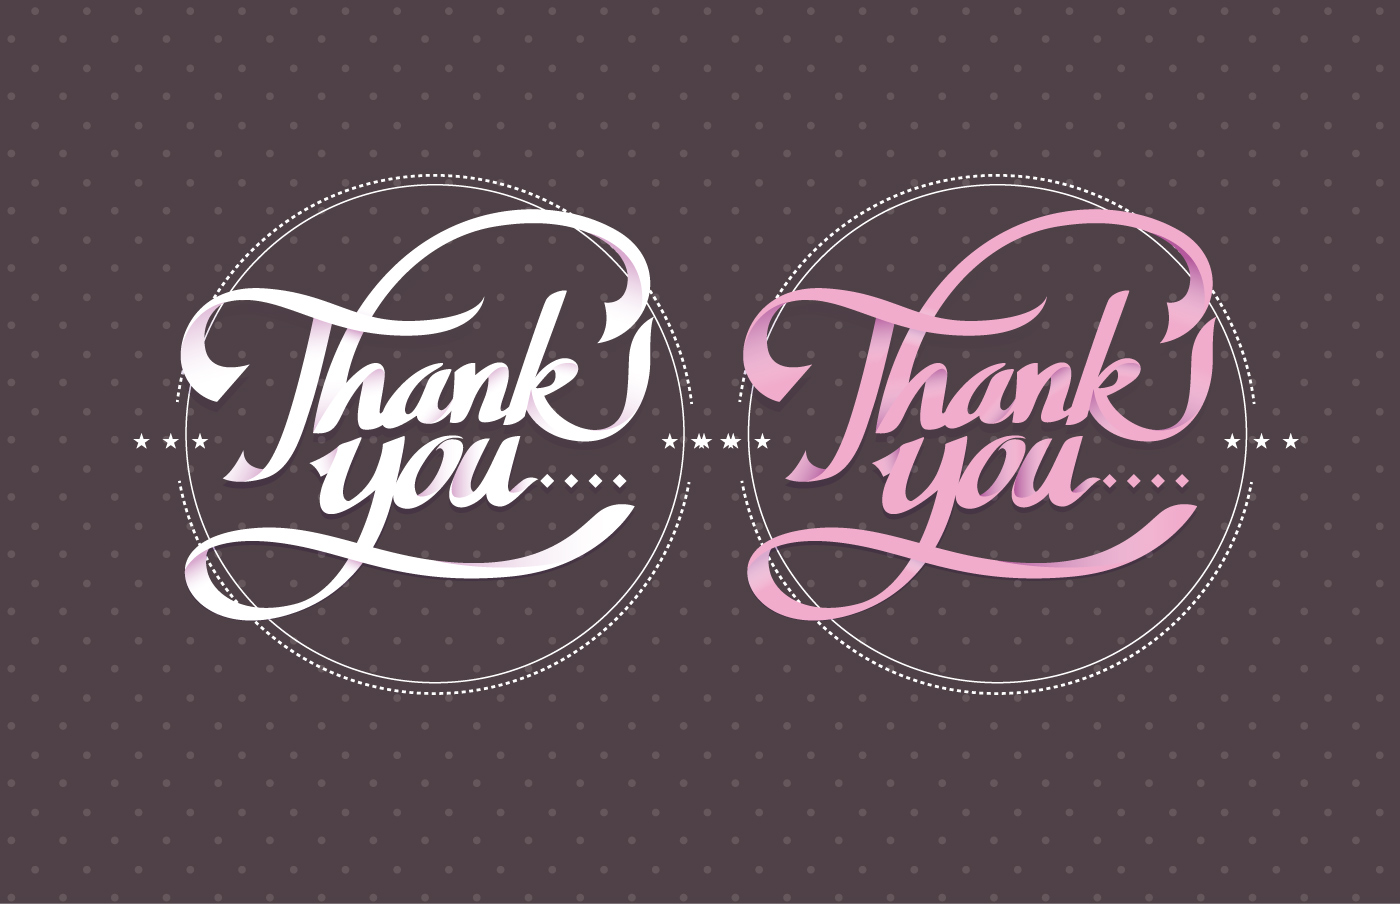 Thank You Typography Vector Download Free Vector Art